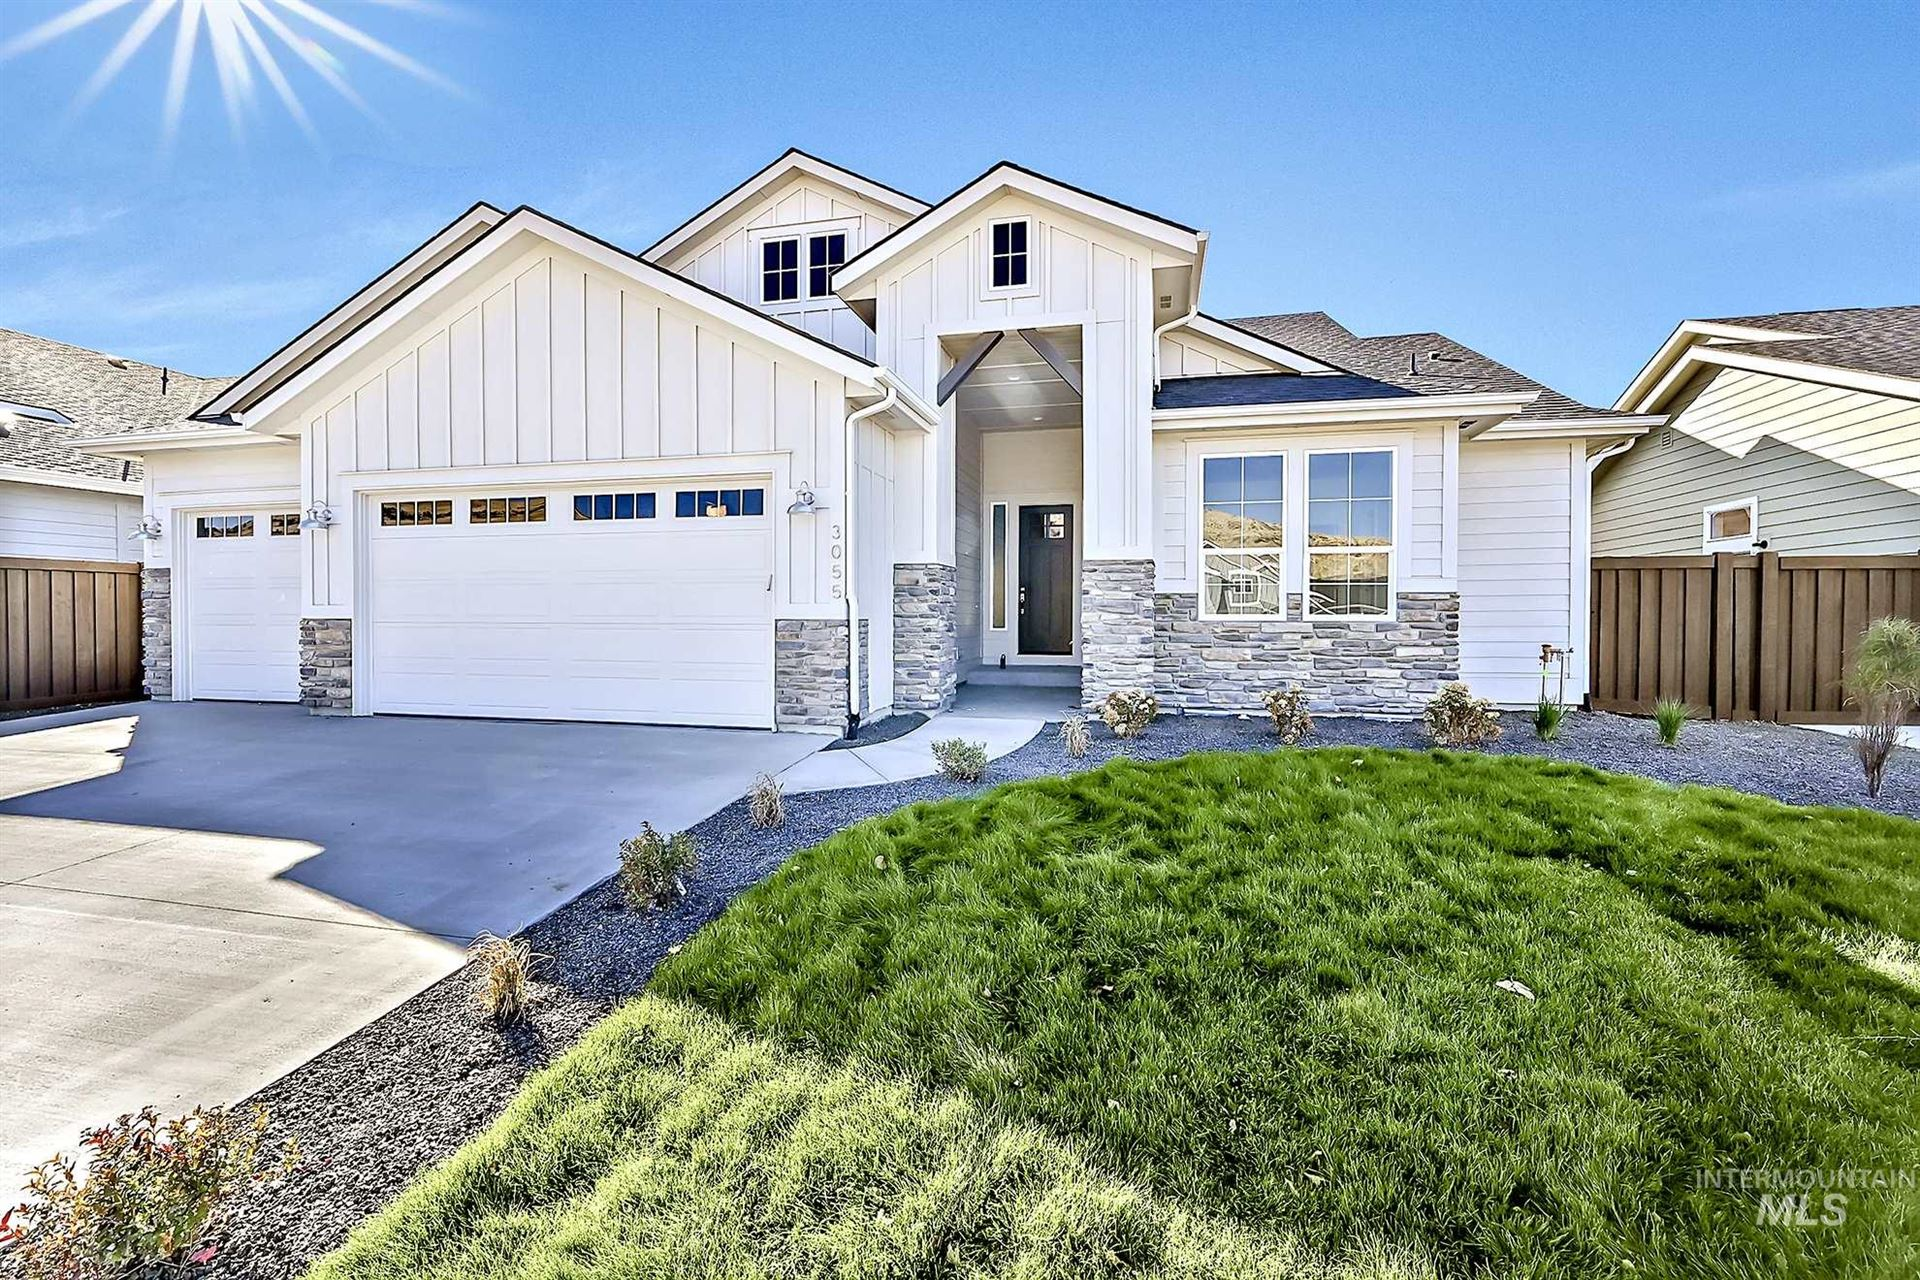 Photo of 3055 W Antelope View Dr, Boise, ID 83714 (MLS # 98768561)